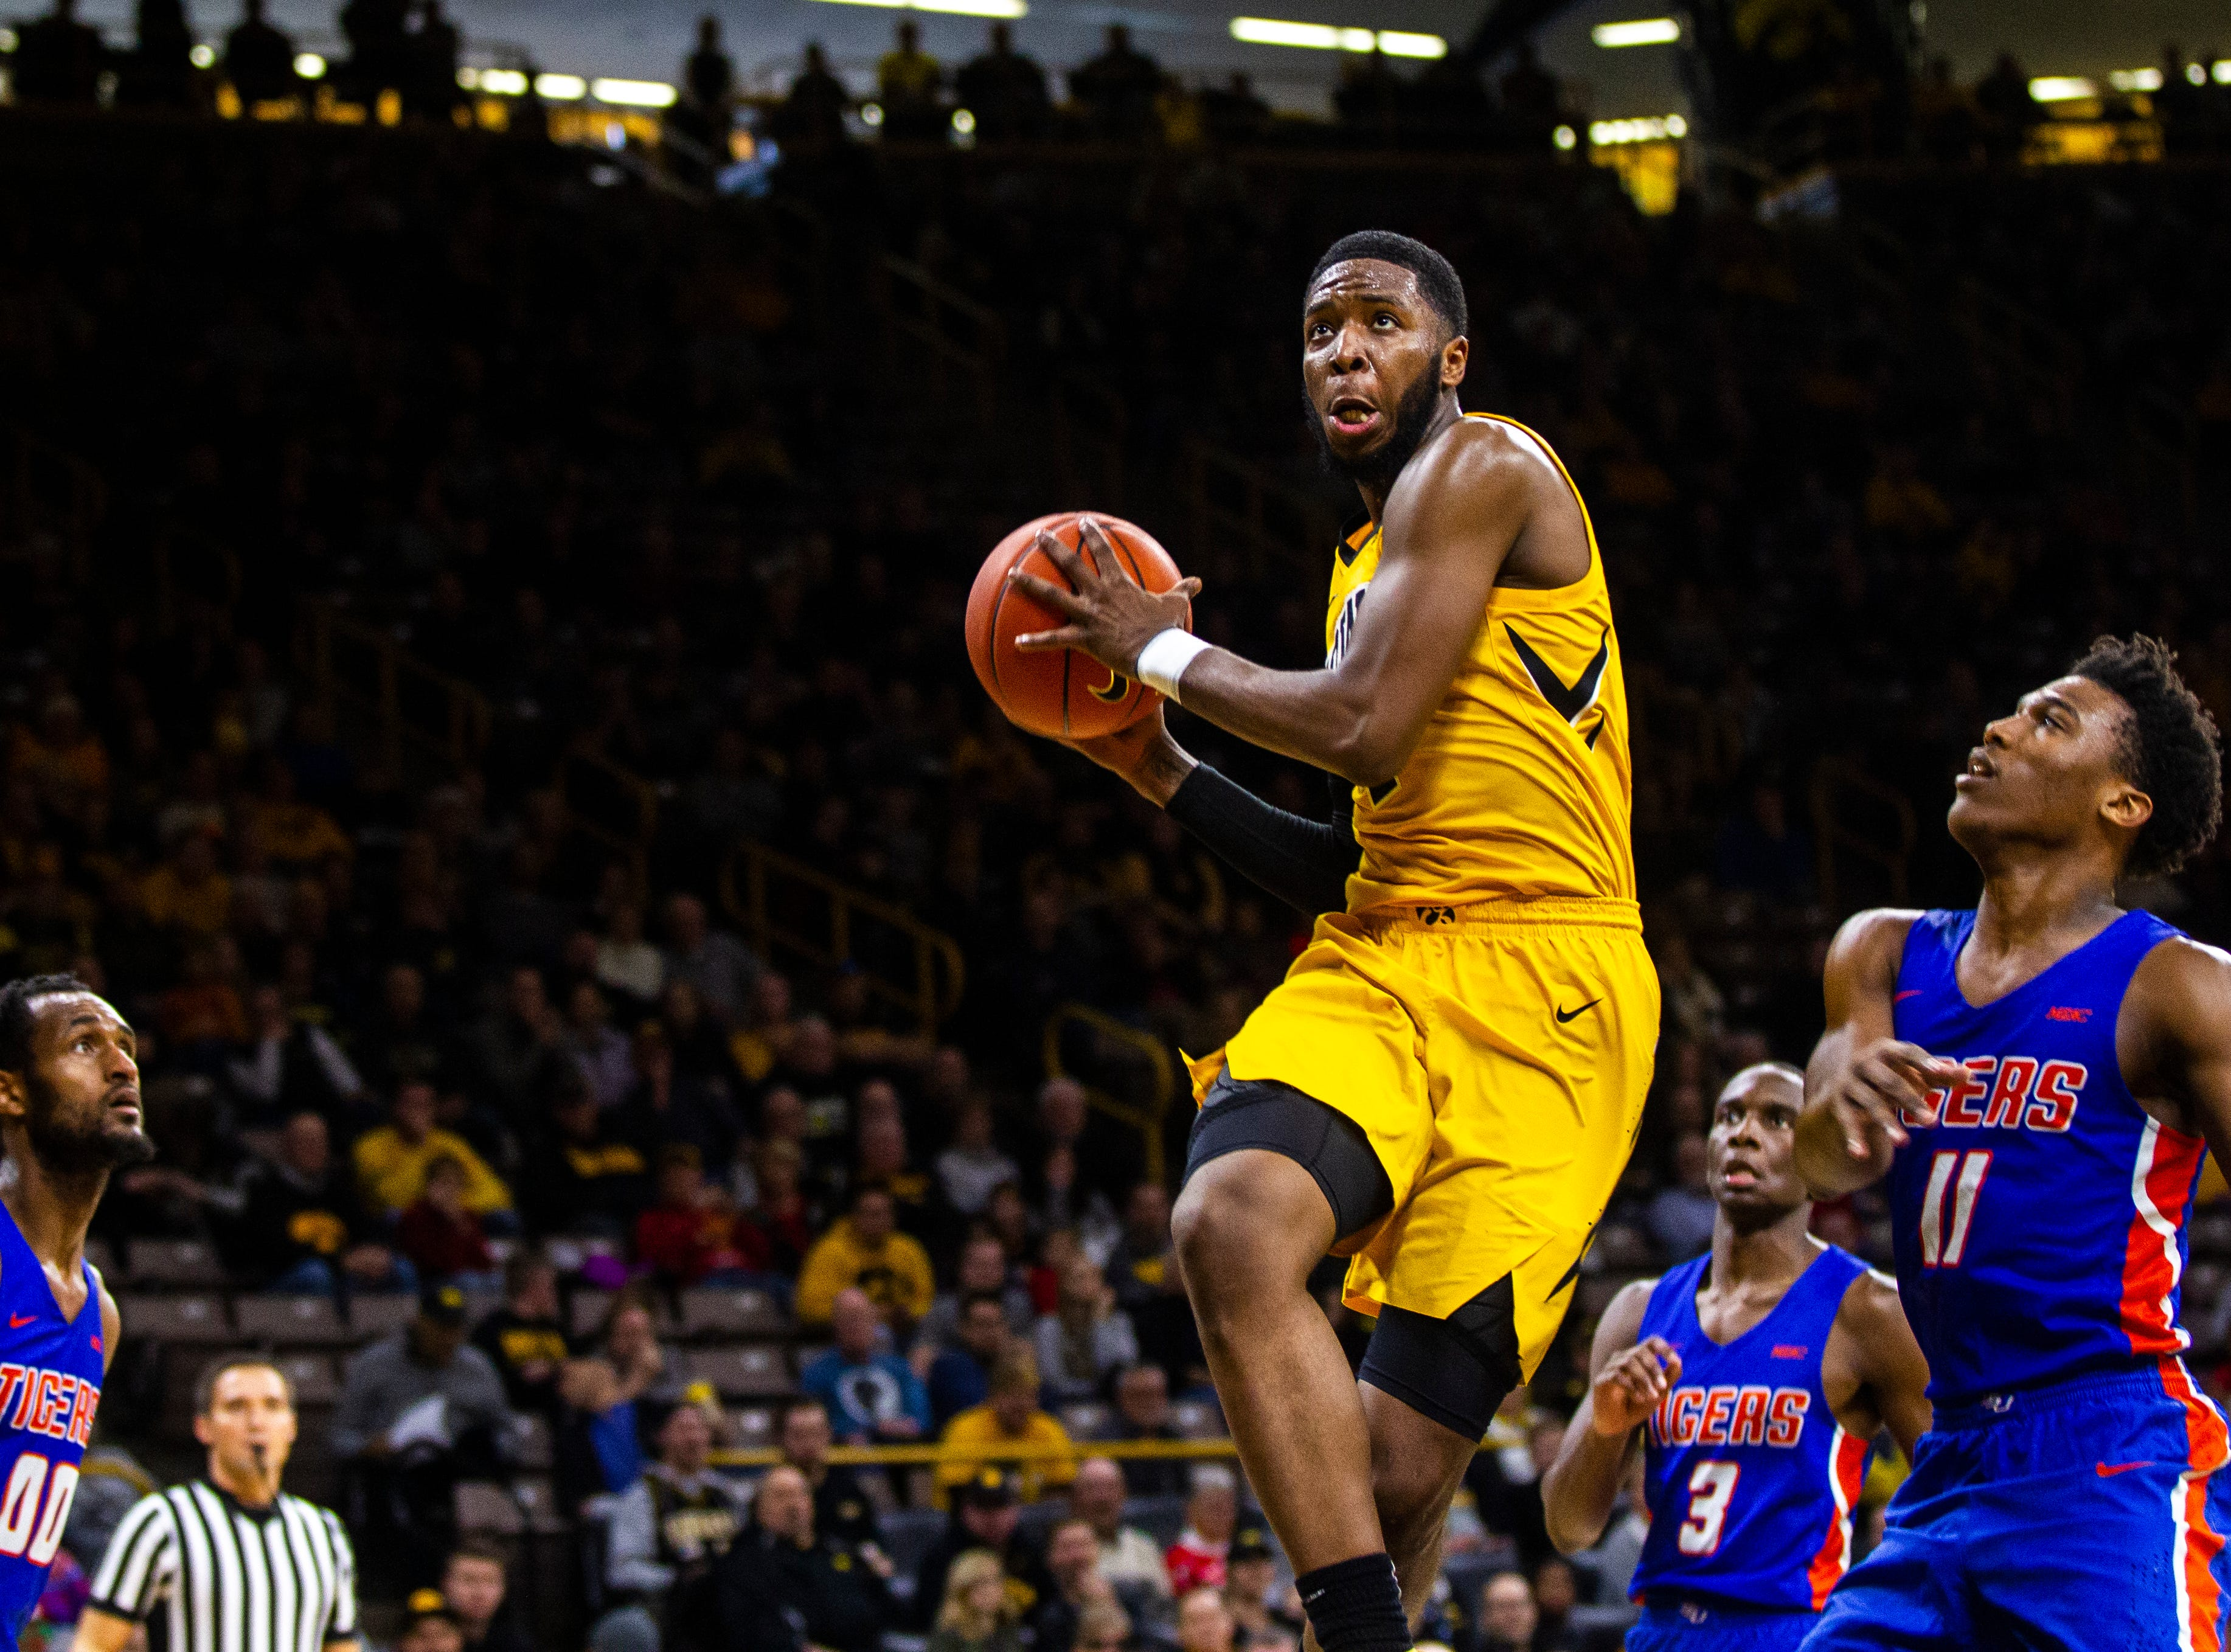 Iowa guard Isaiah Moss (4) drives to the hoop during a NCAA men's basketball game on Saturday, Dec. 22, 2018, at Carver-Hawkeye Arena in Iowa City.